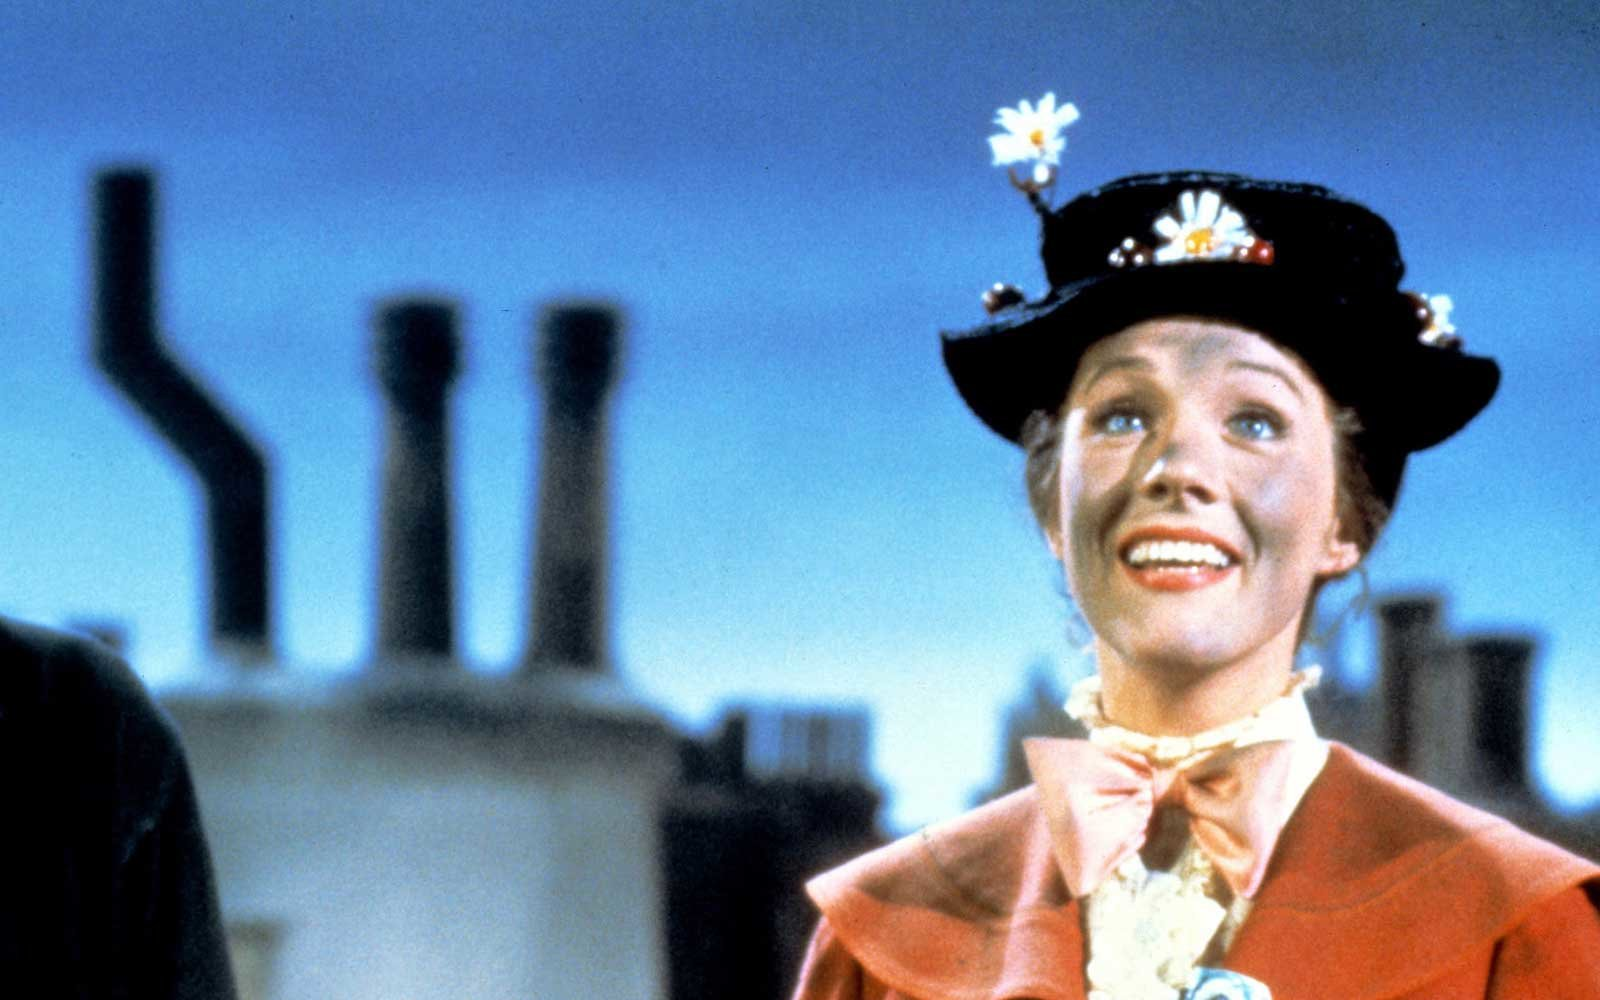 Fans Of Mary Poppins Can Fly Umbrellas And Sweep Chimneys